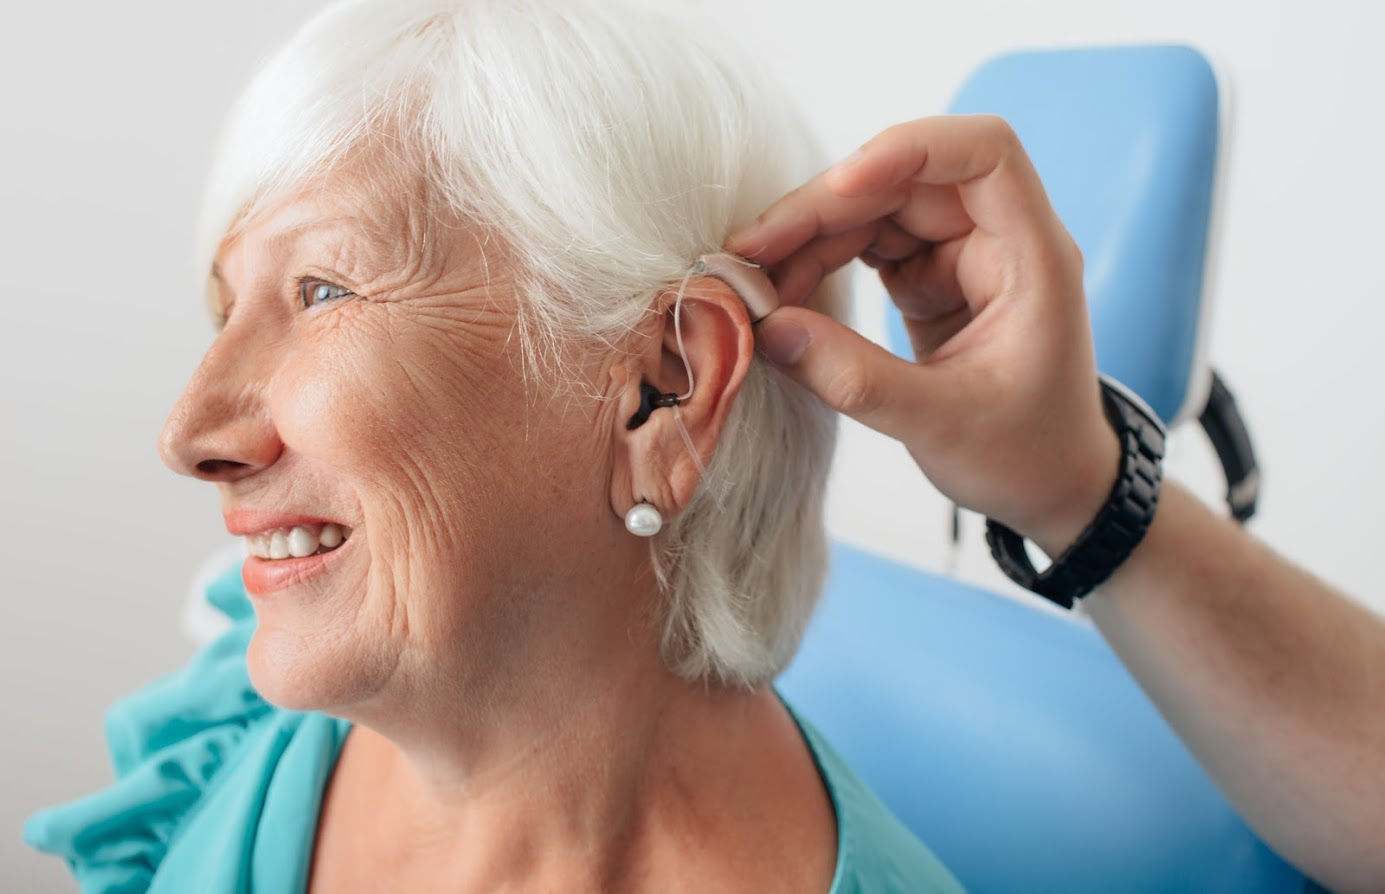 A hearing aid being placed on an elderly woman